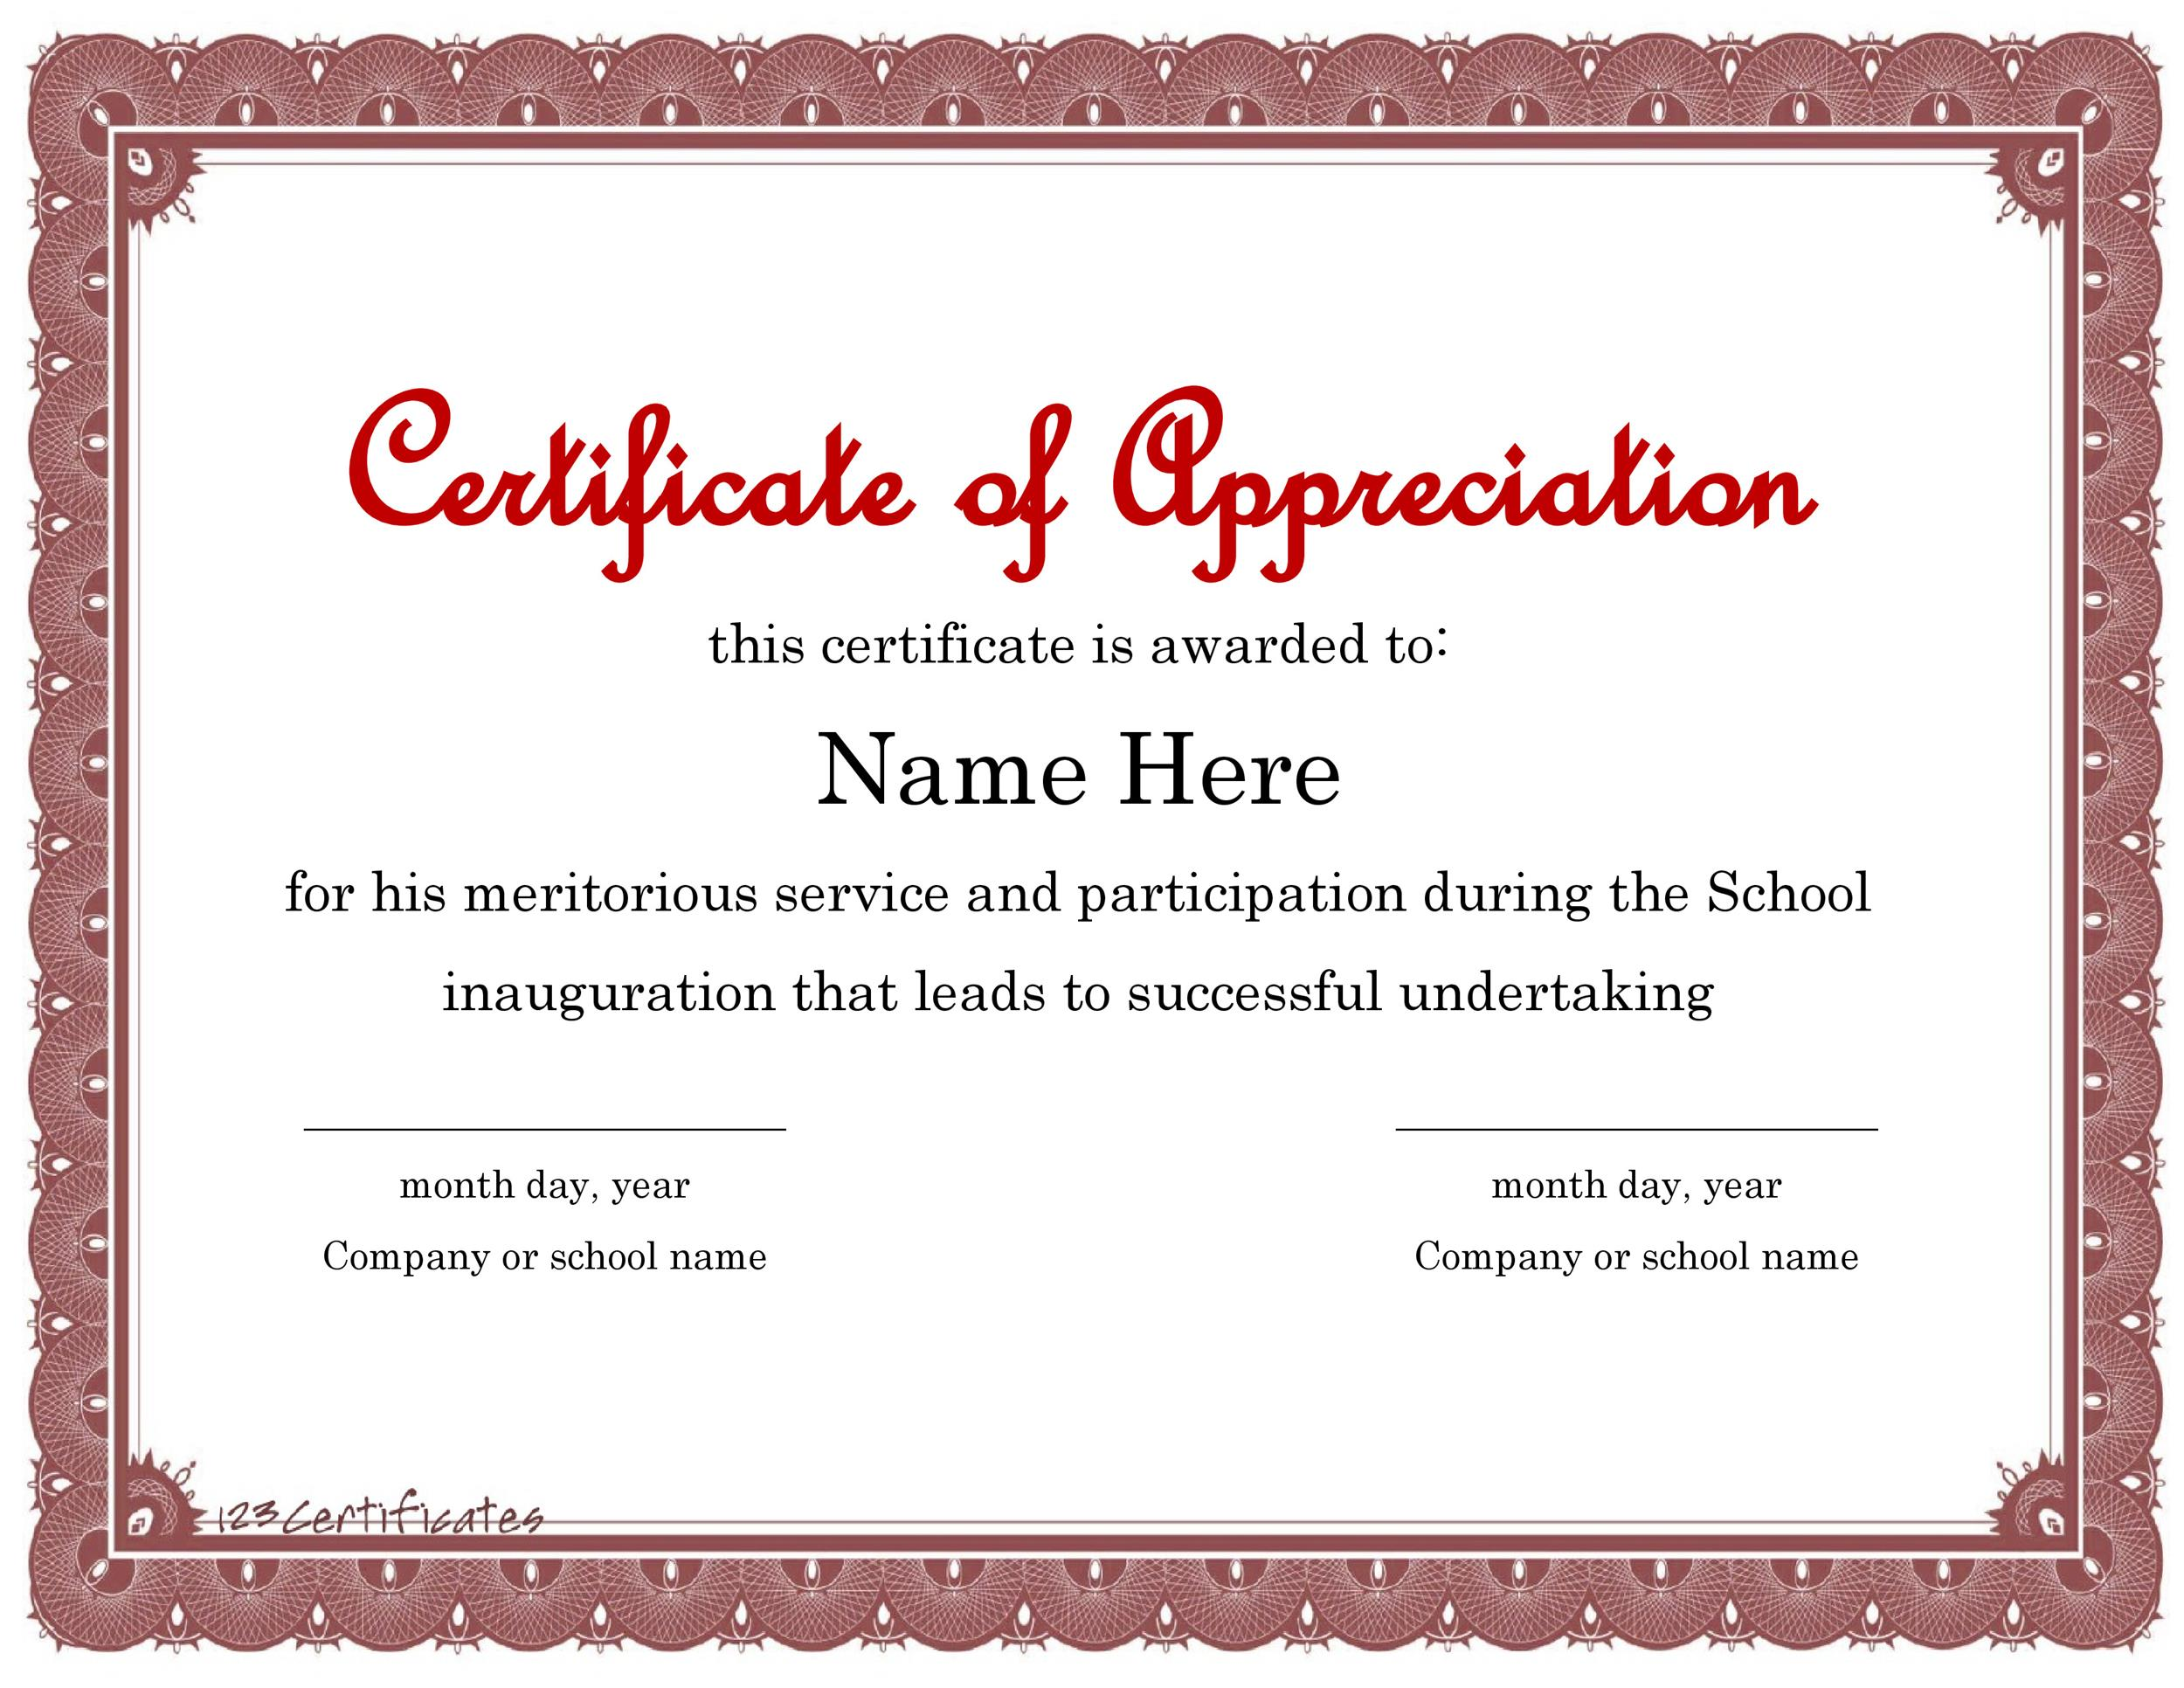 Free Certificate of Appreciation 01